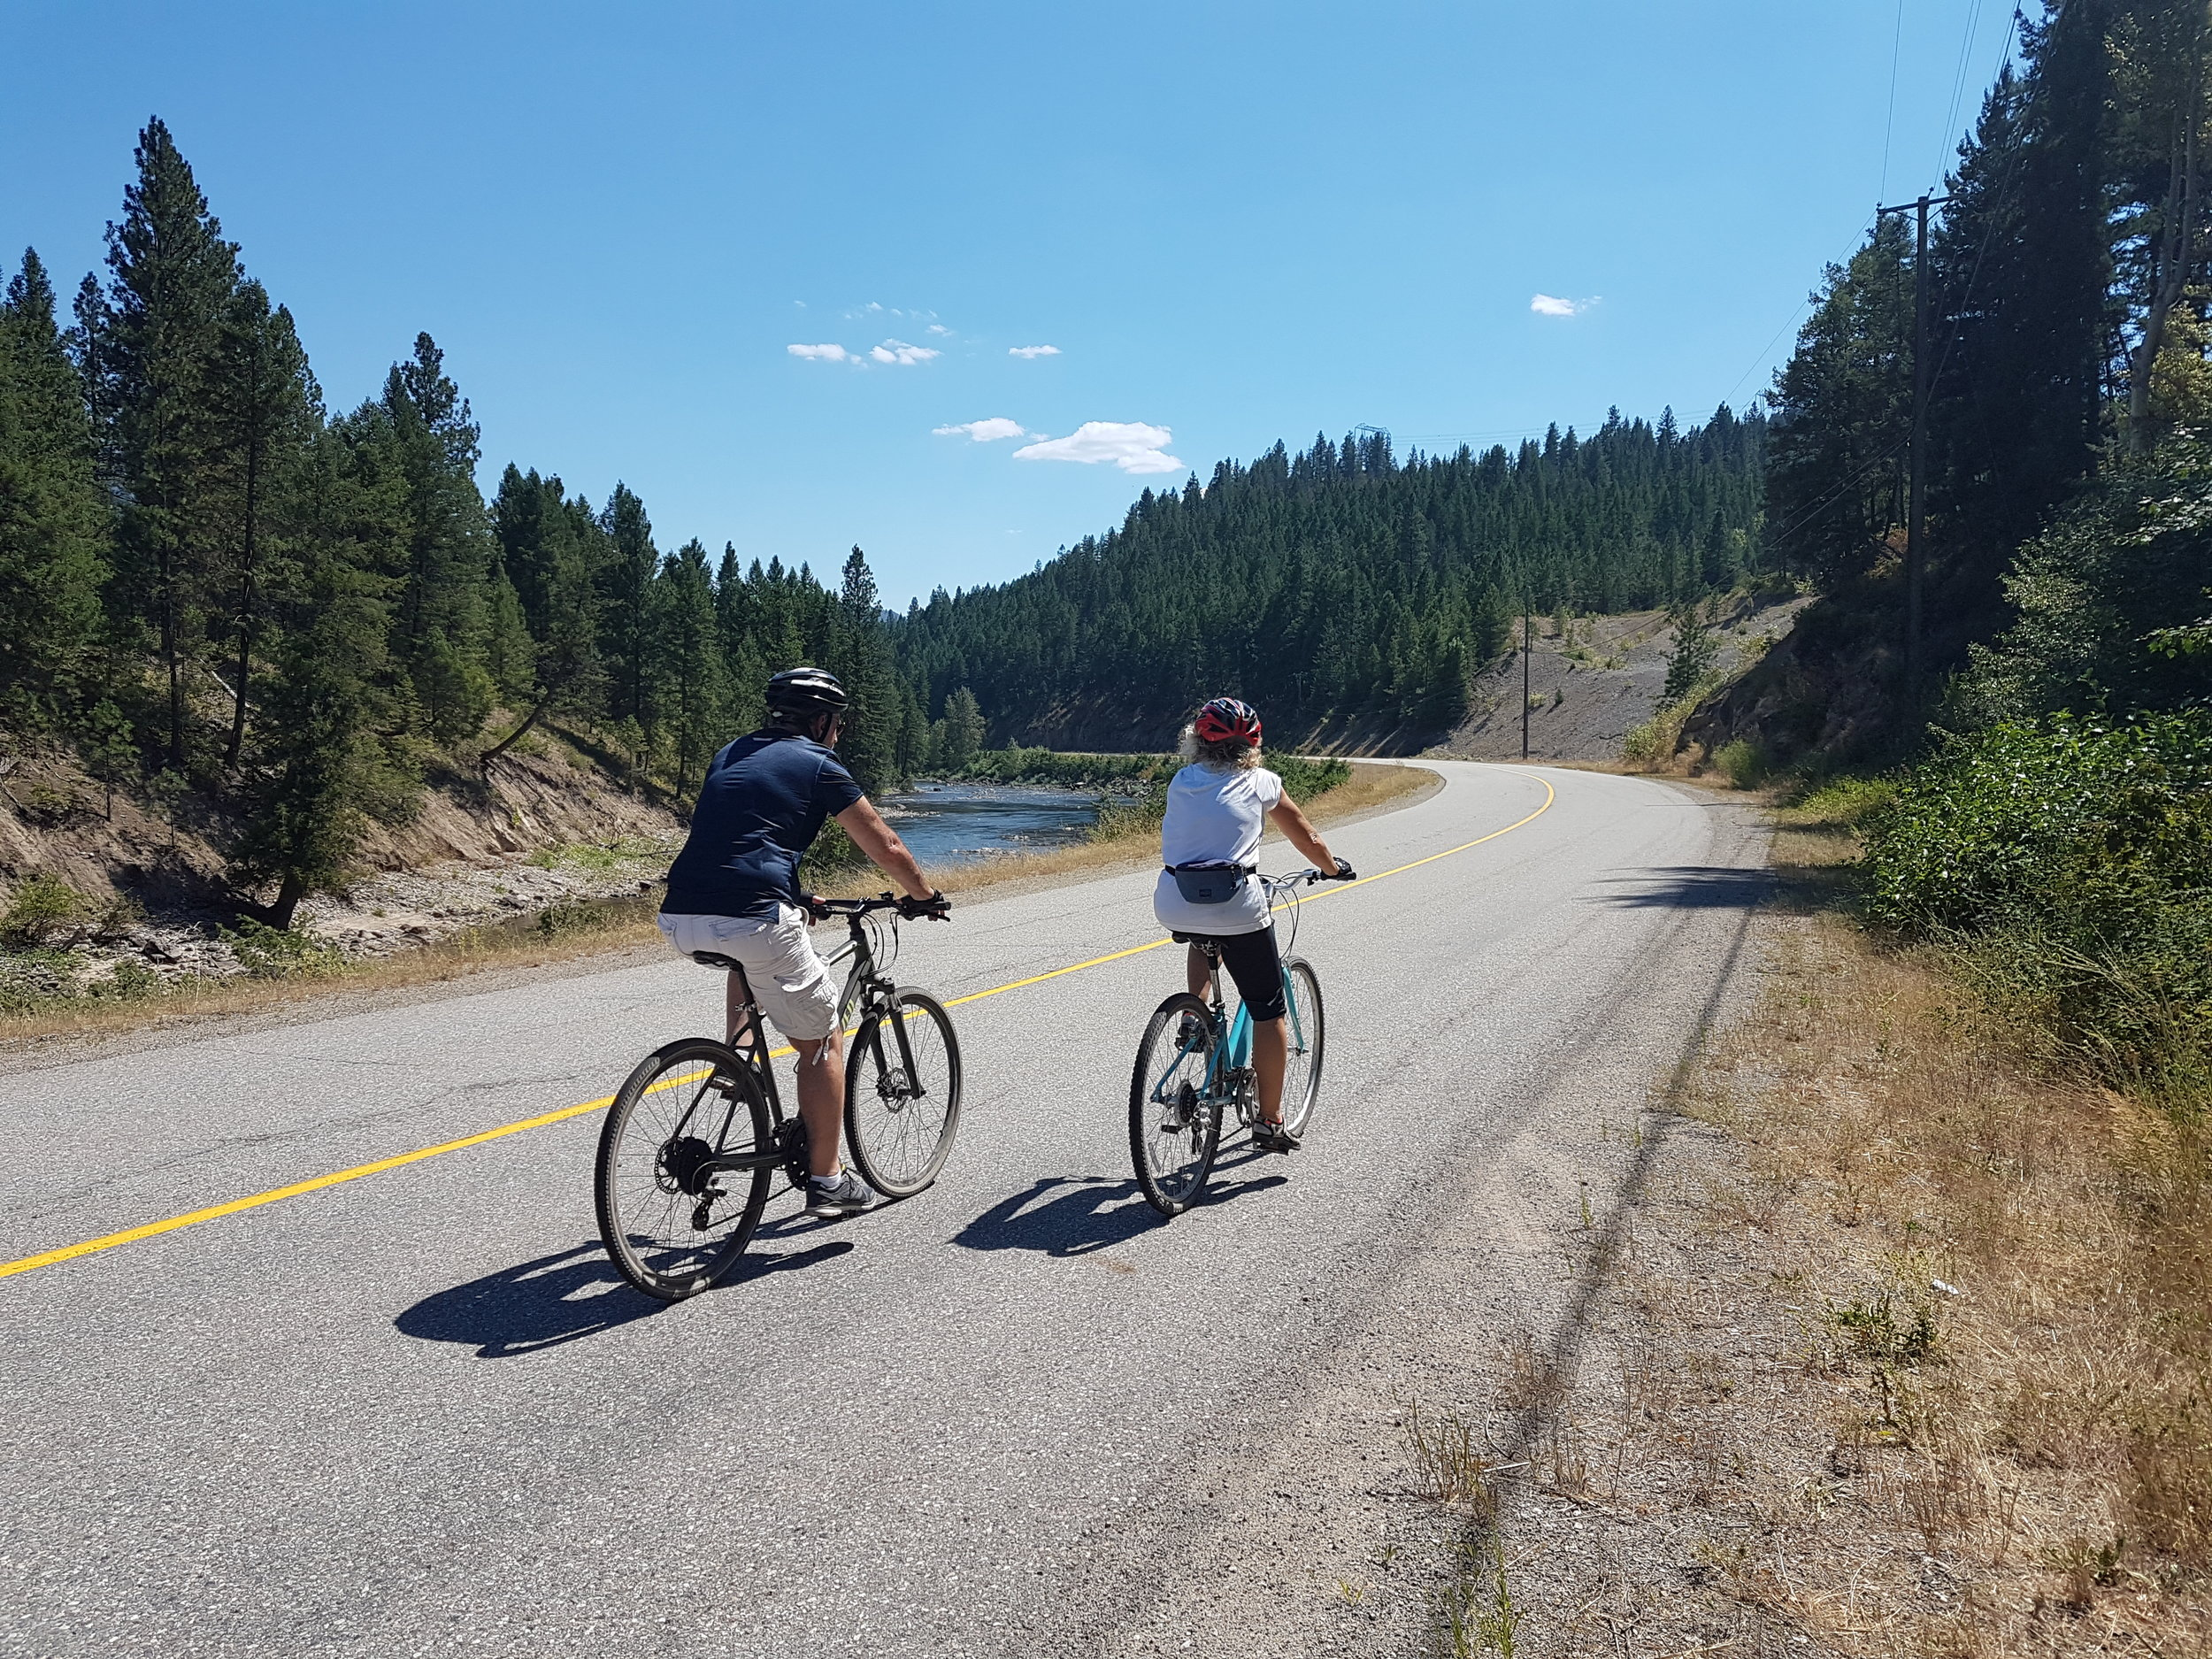 Cycling on the road during one of our Multiday Bike holidays